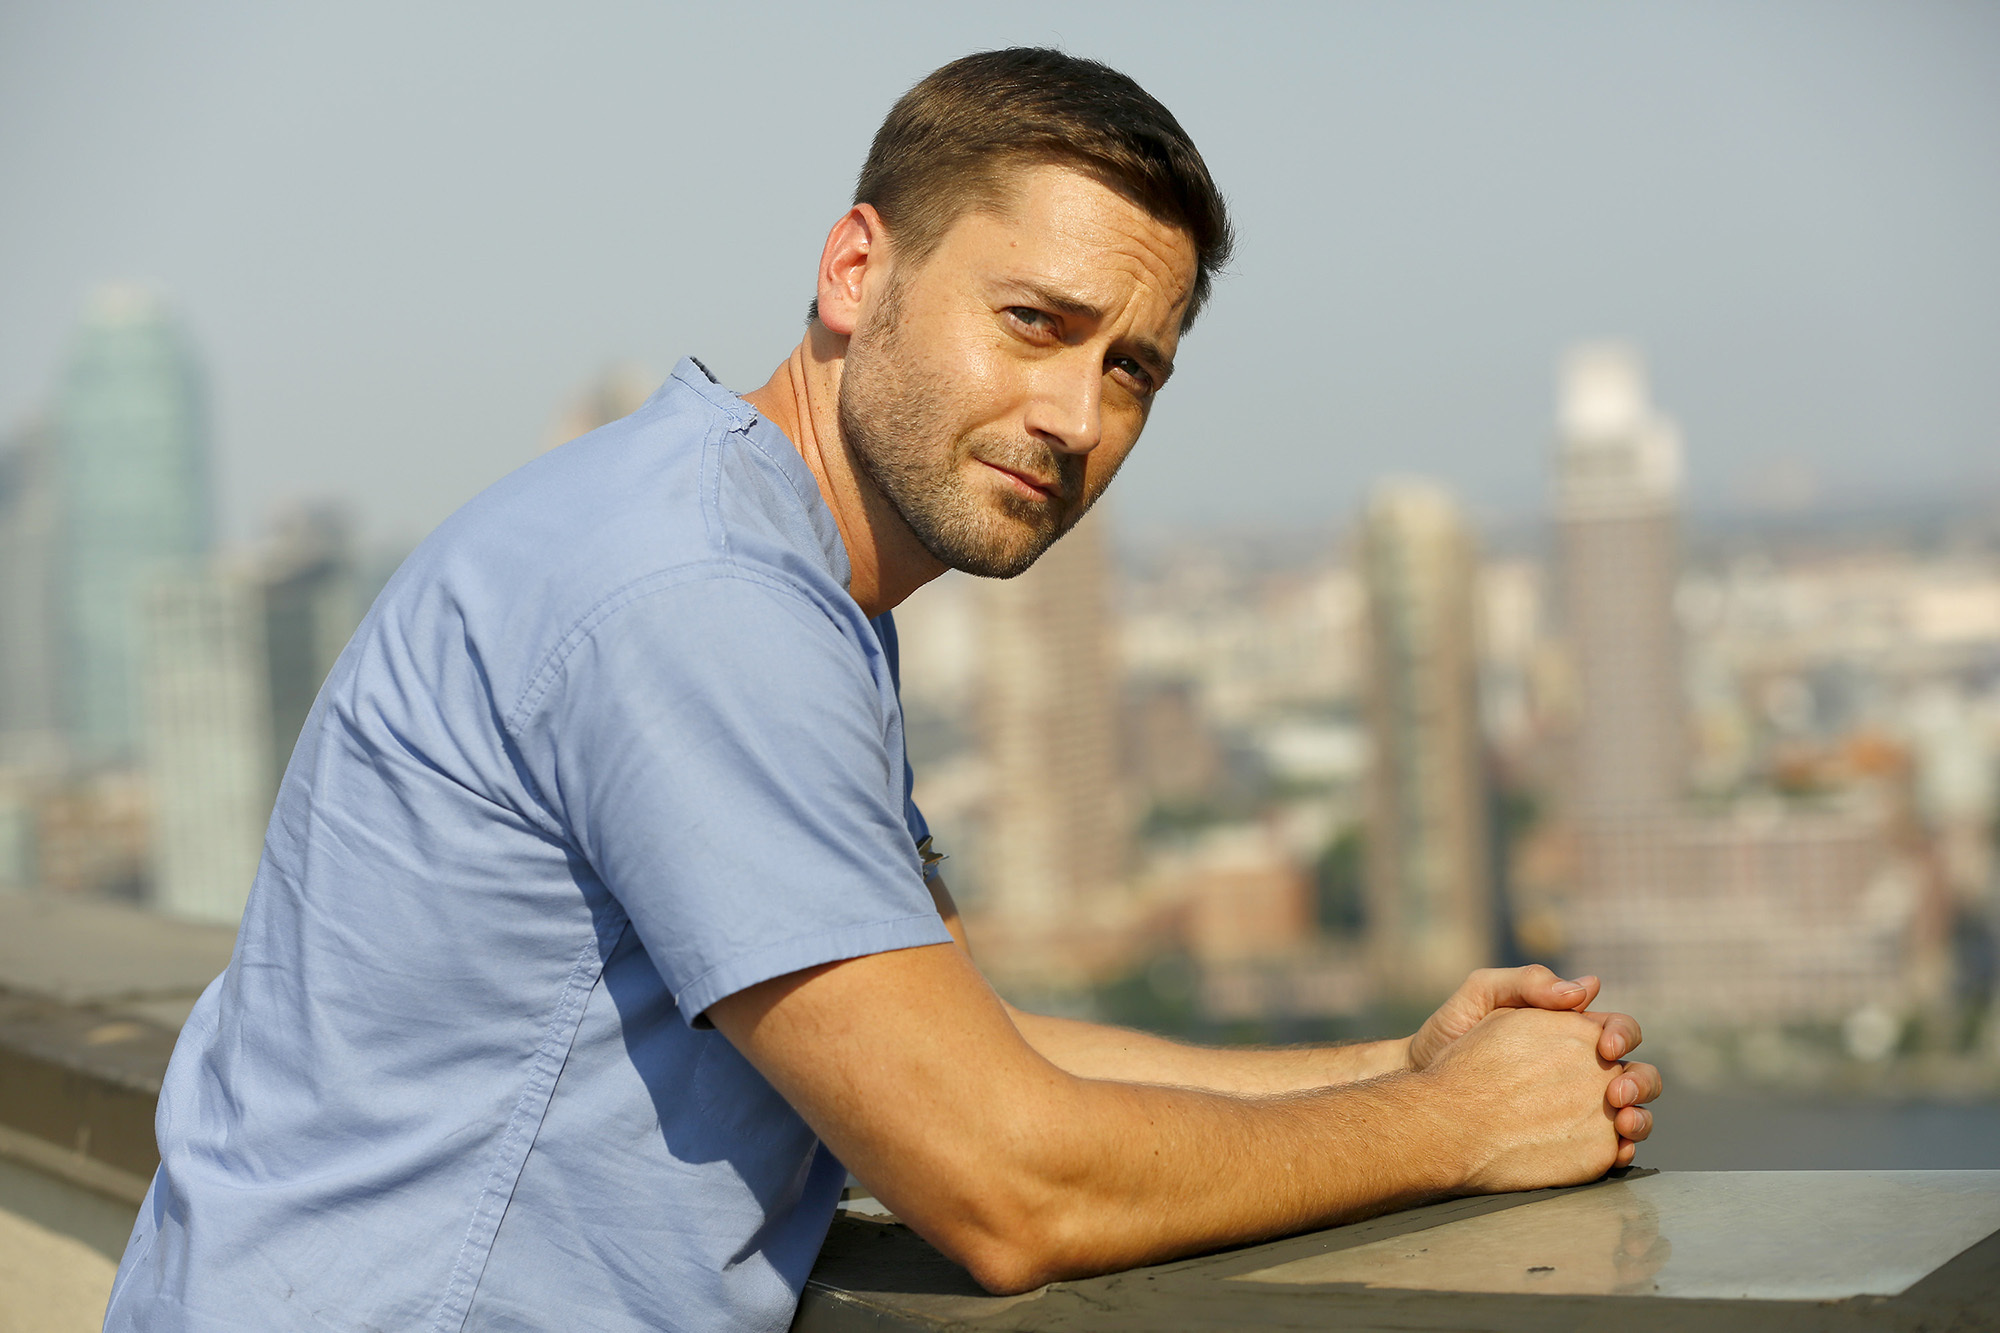 Ryan Eggold as Dr. Max Goodwin in 'New Amsterdam.'